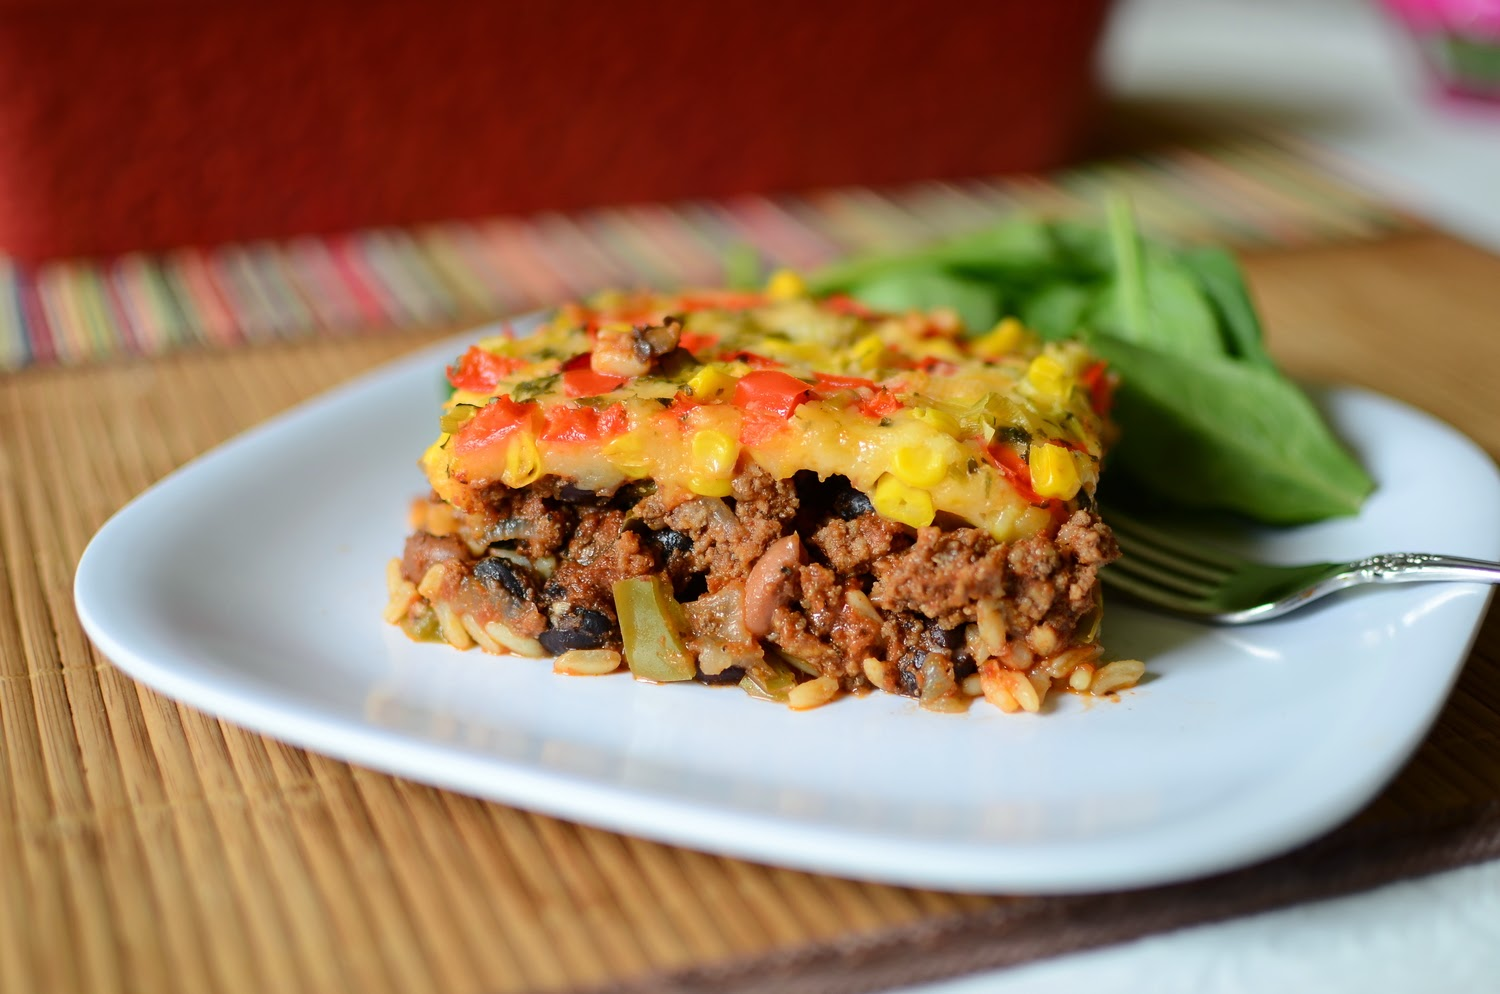 Mexican Beef Casserole, shared by Butter Yum